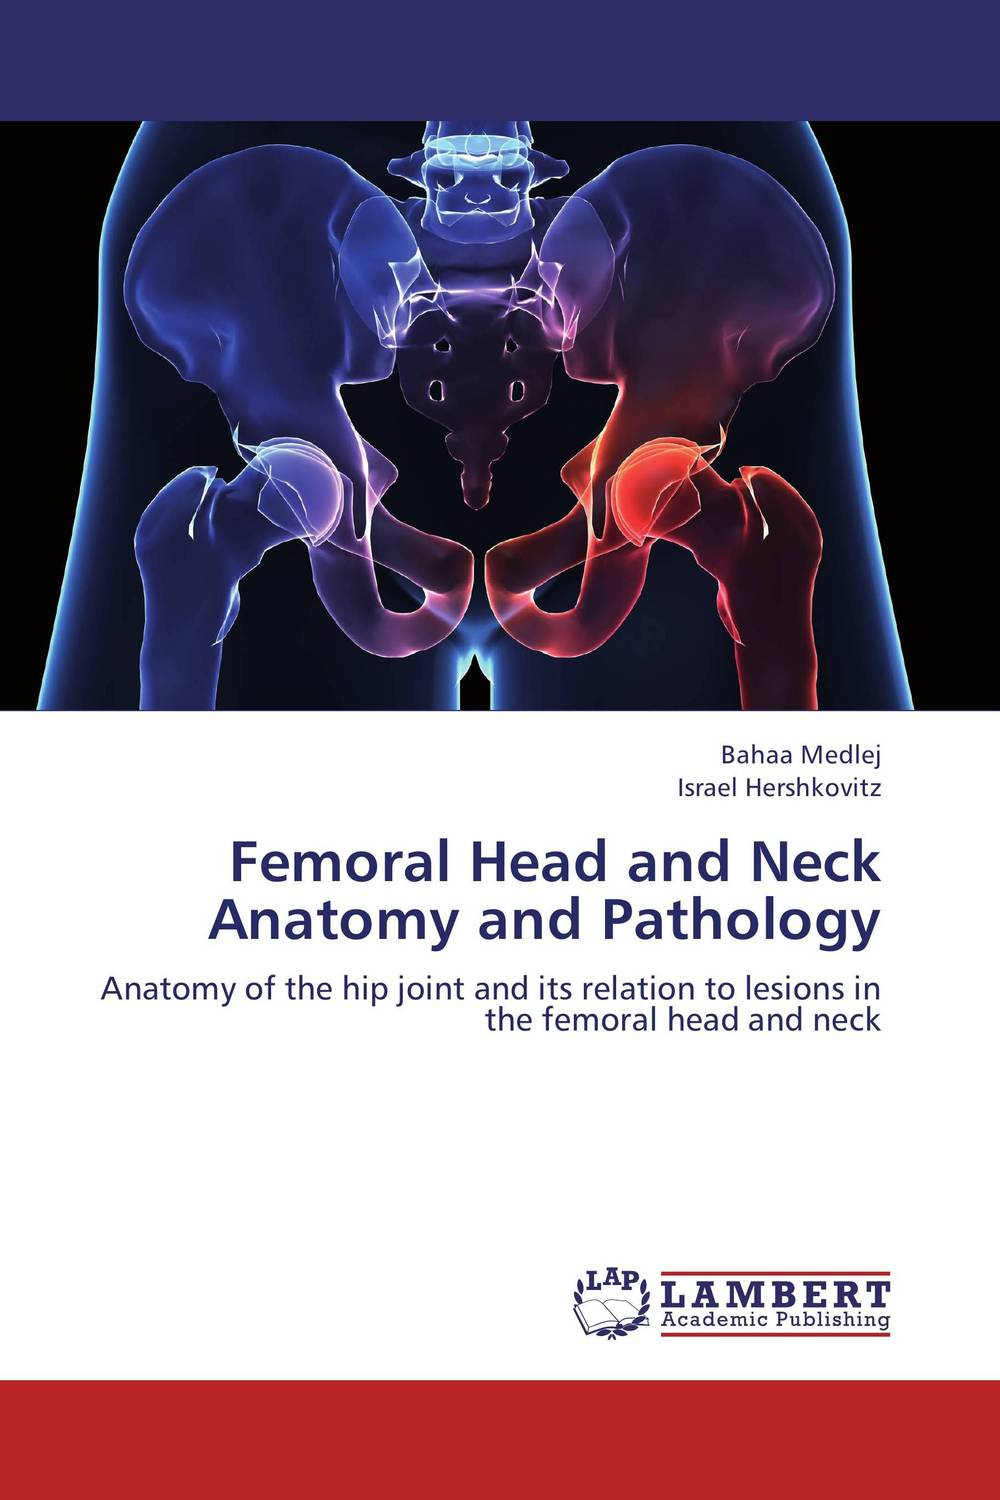 Femoral Head and Neck Anatomy and Pathology fibular grafting in femoral neck fractures with posterior comminution